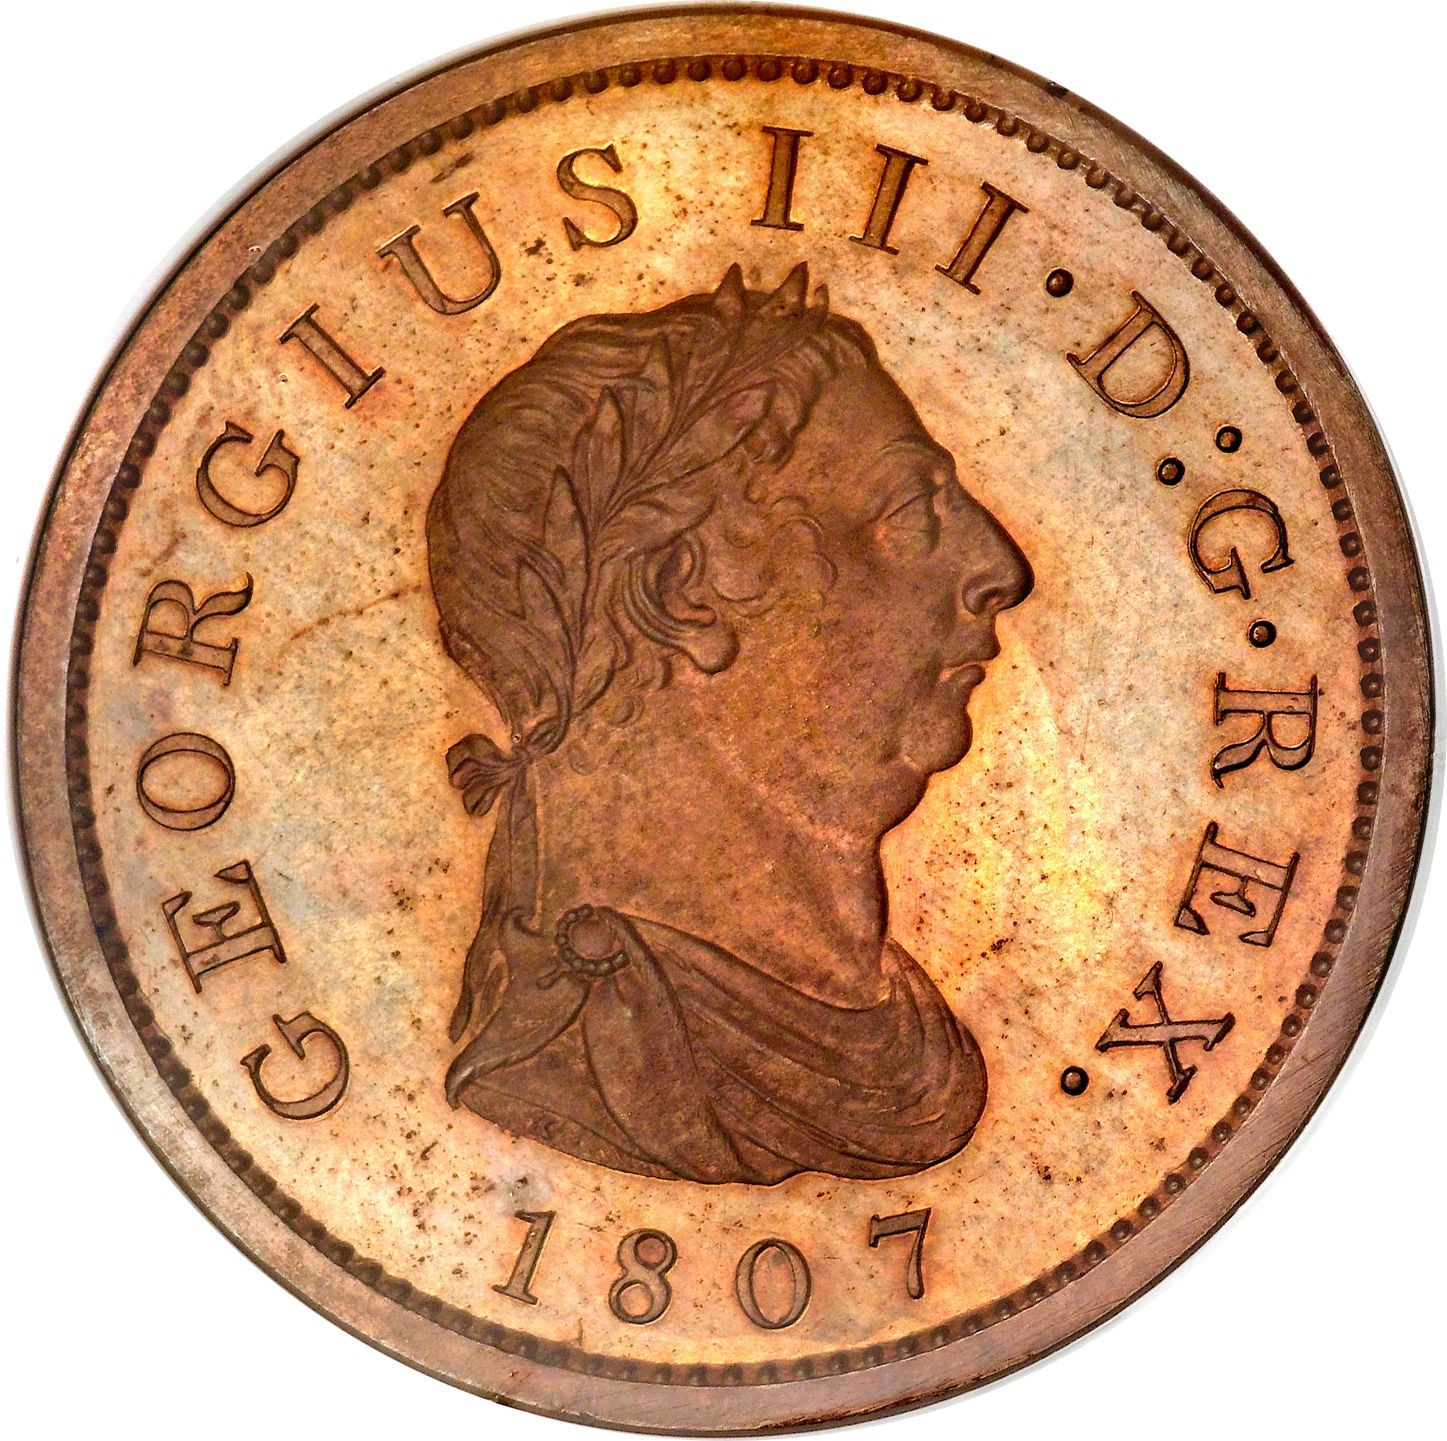 British 1 Penny (1806-1808 George III)